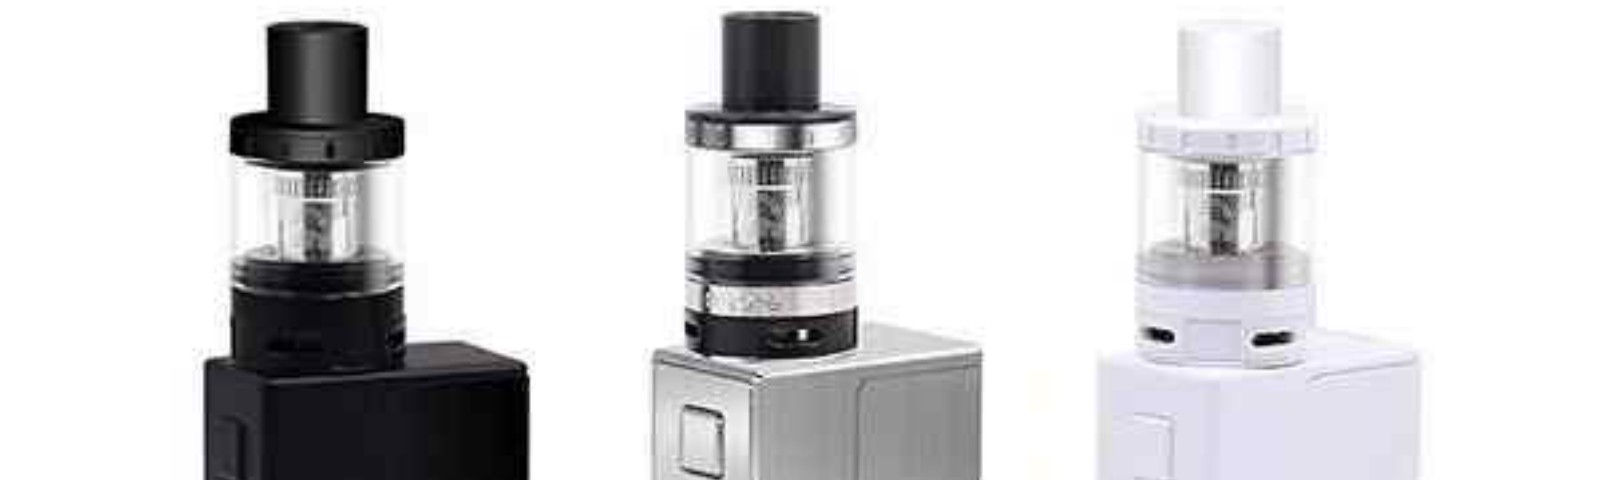 Aspire atlantis EVO75 kit